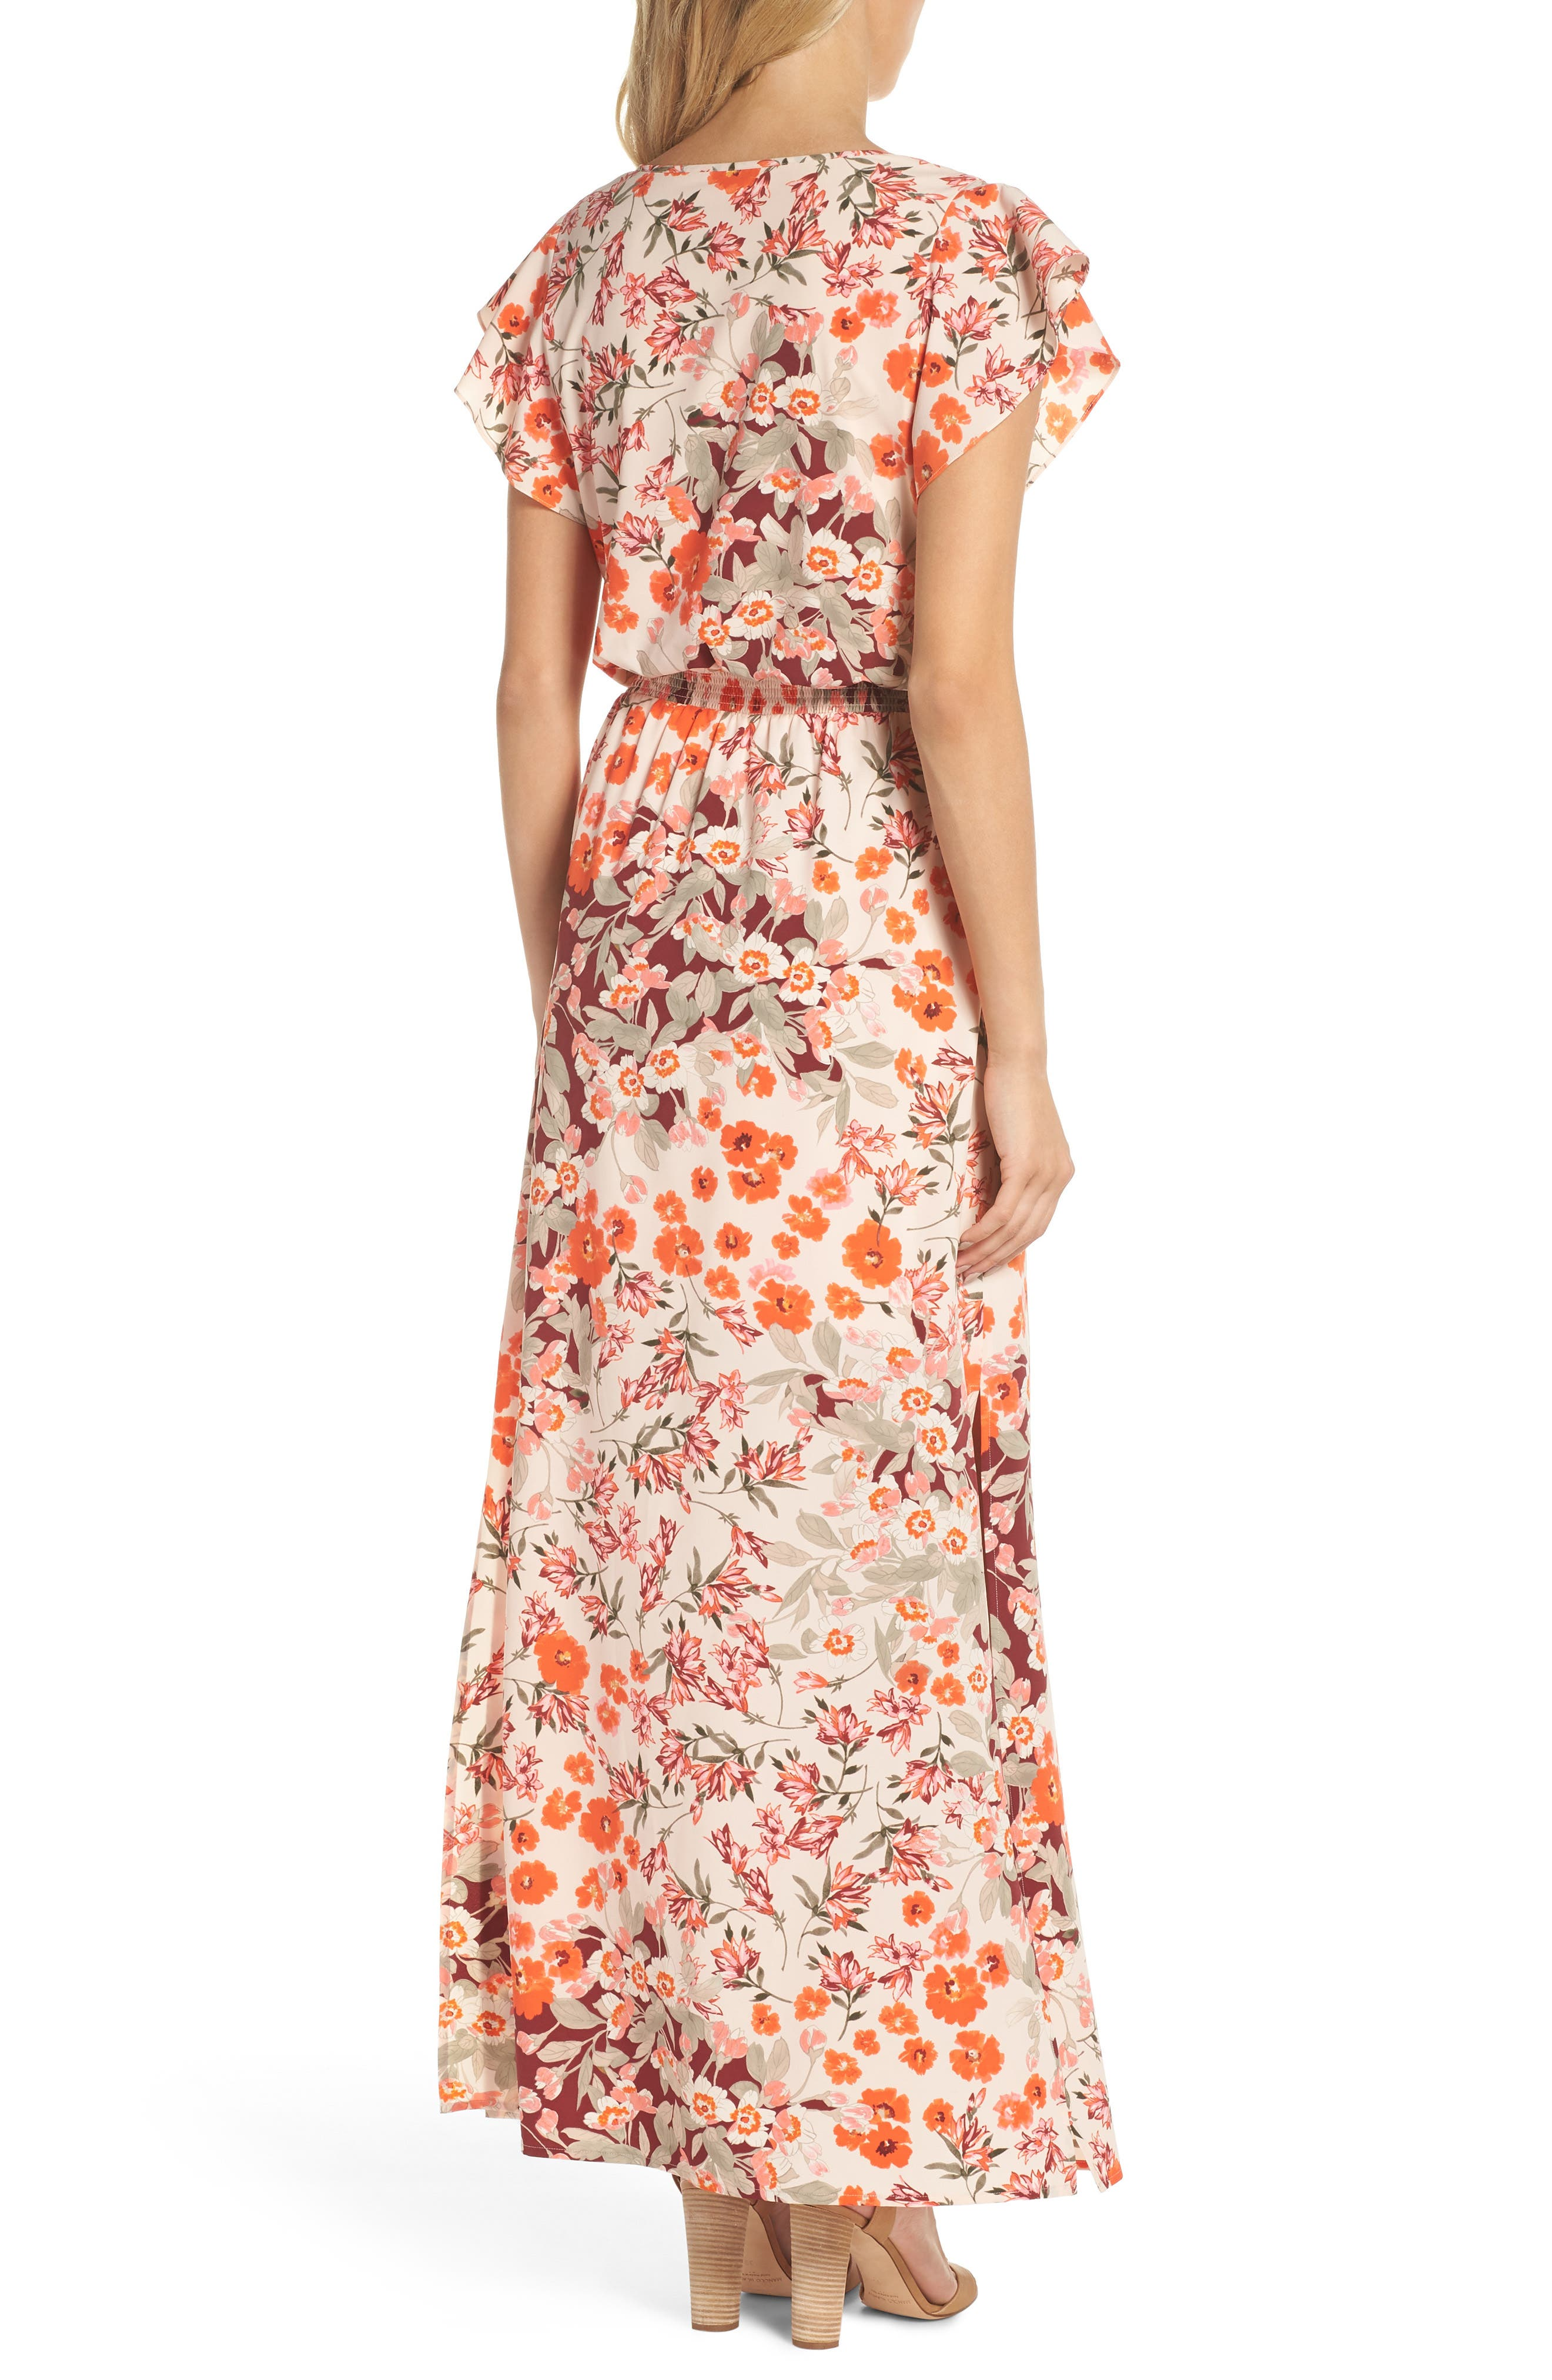 ADRIANNA PAPELL,                             Floral Ruffle Sleeve Maxi Dress,                             Alternate thumbnail 2, color,                             640